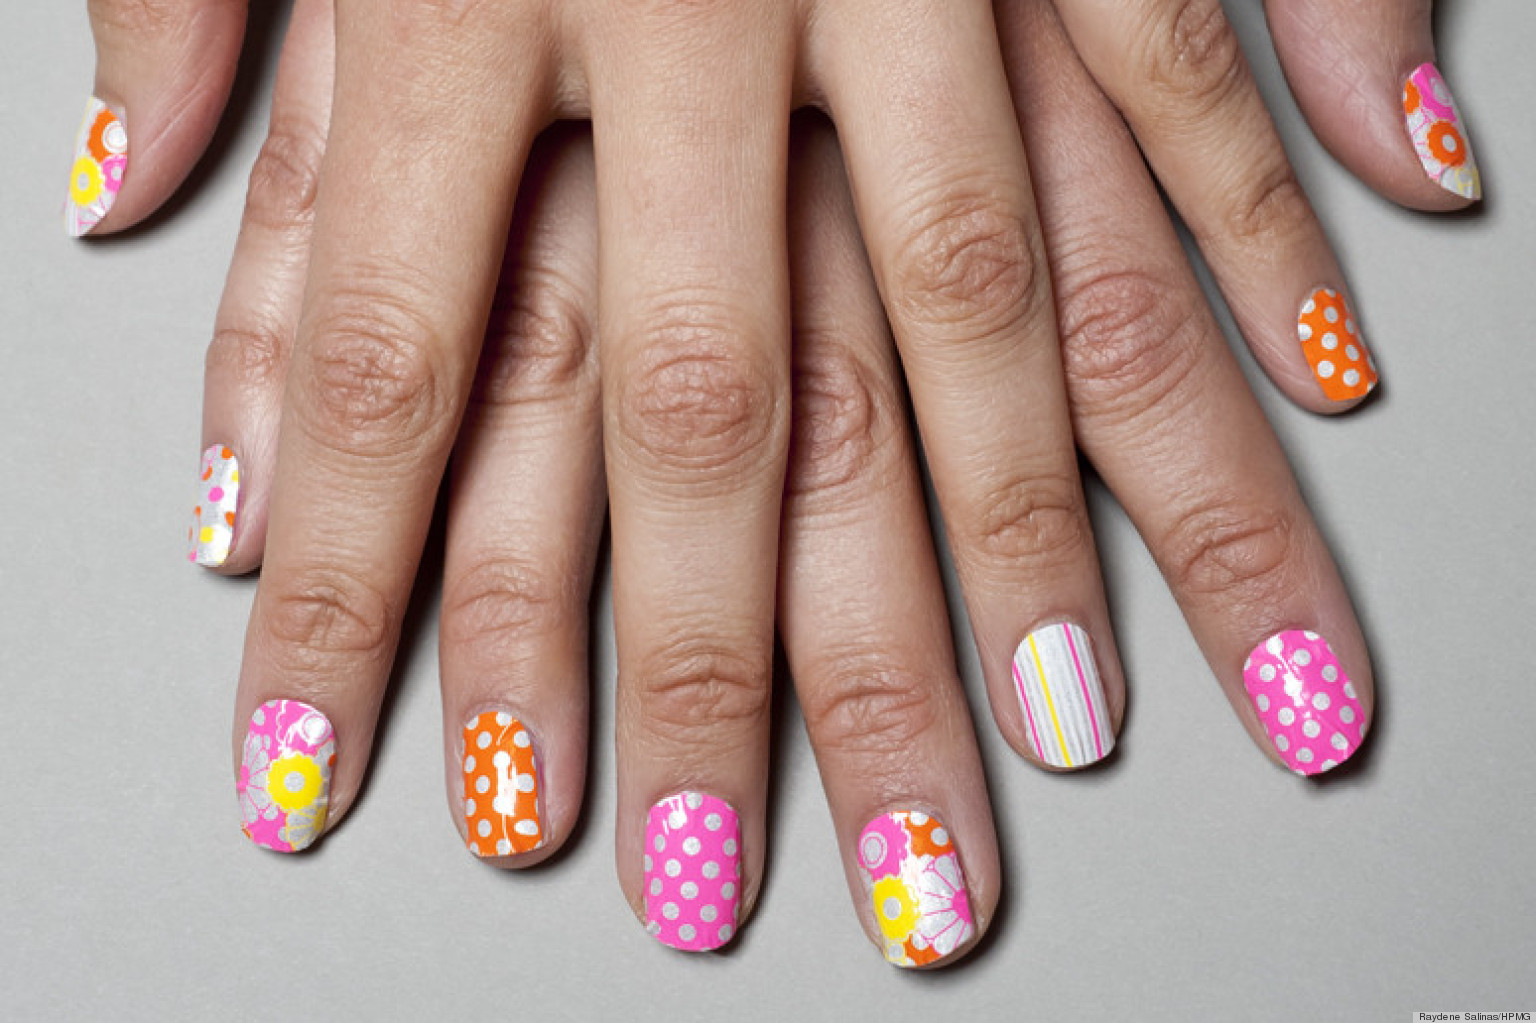 Nails Art: Nail Art Stickers: The Dos And Don'ts Of Application